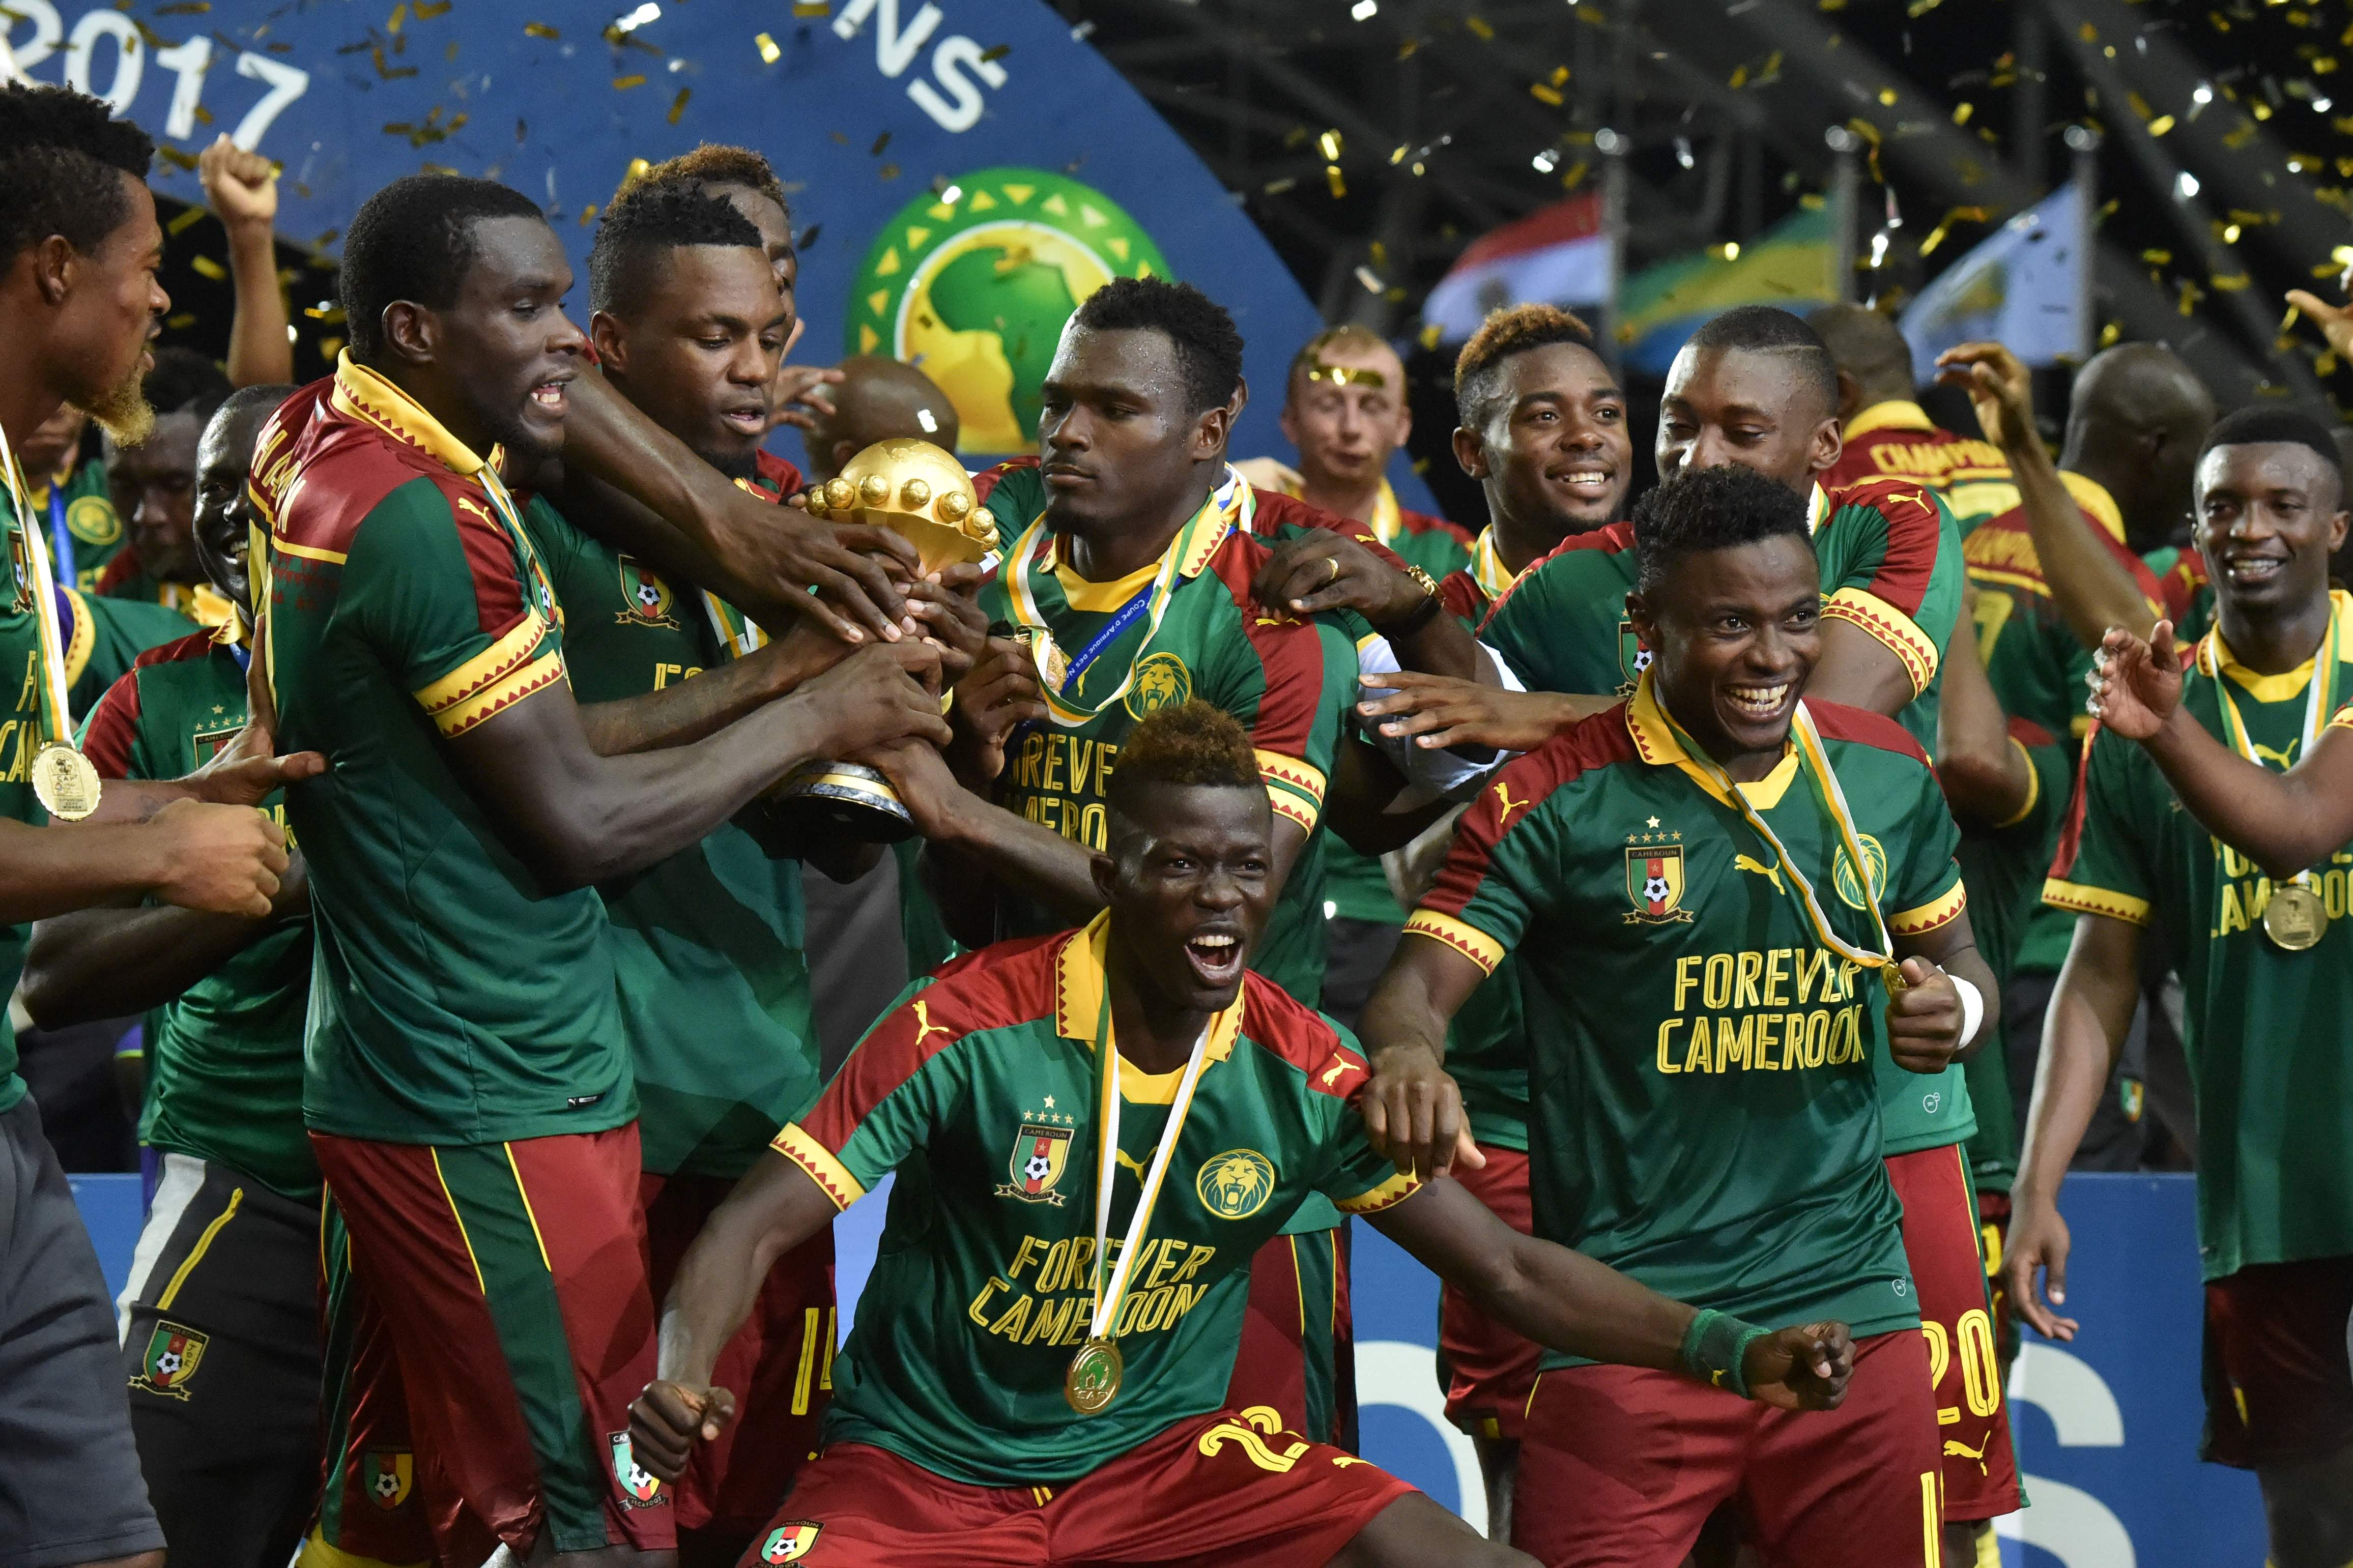 Cameroon's midfielder Christian Bassogog and team mates celebrate beating Egypt 2-1 to win the 2017 Africa Cup of Nations final